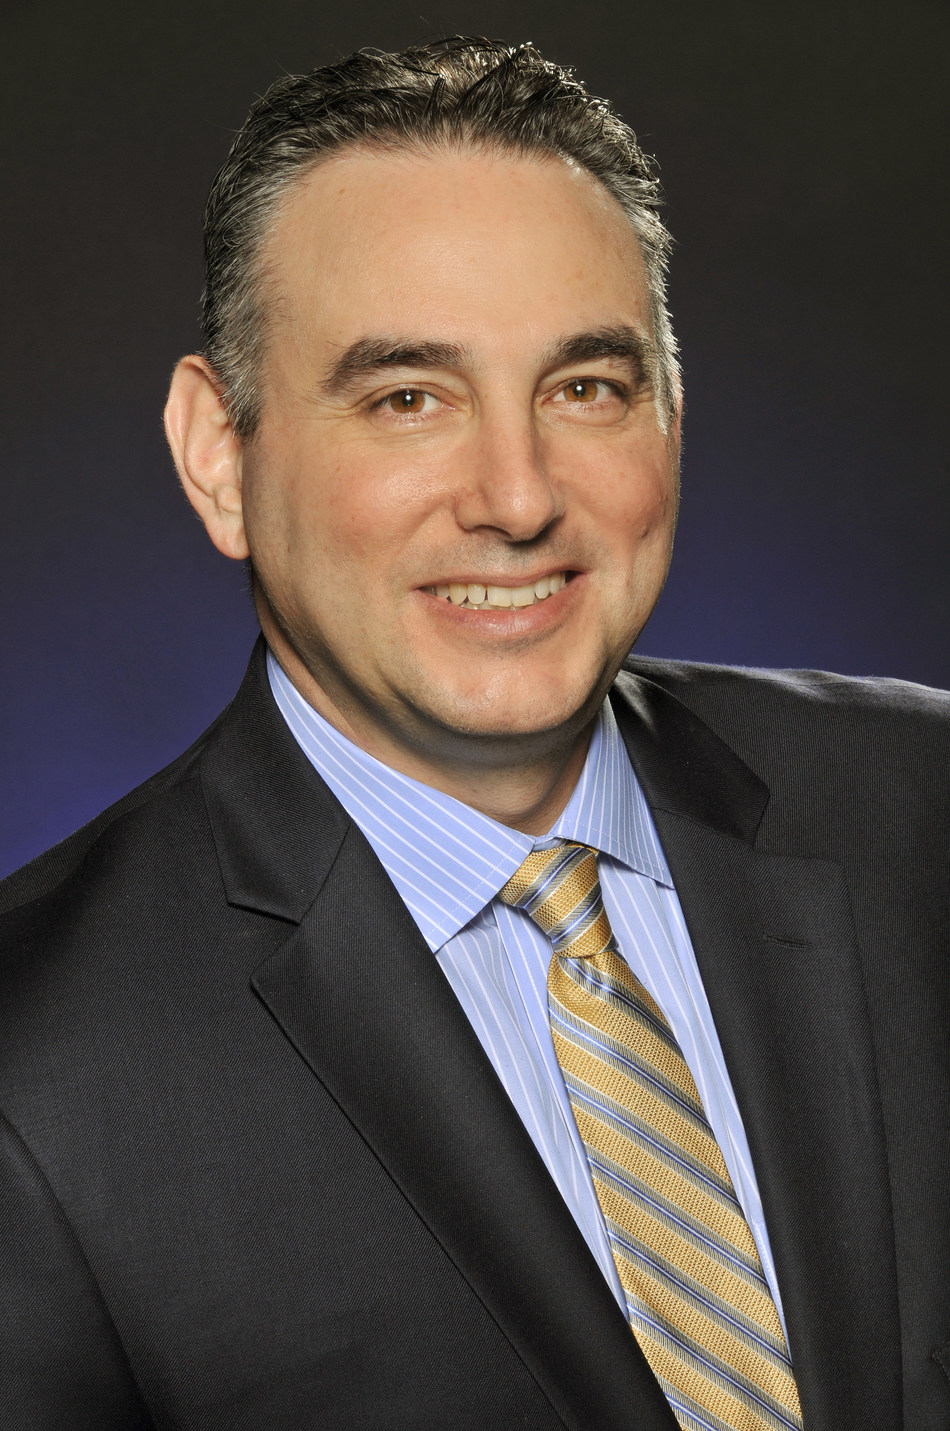 Jeffery Oliveri is named VP of Food and Beverage for Live! Casino & Hotel where he is responsible for overseeing the strategic direction of Live! Casino & Hotel's complete food and beverage operations.